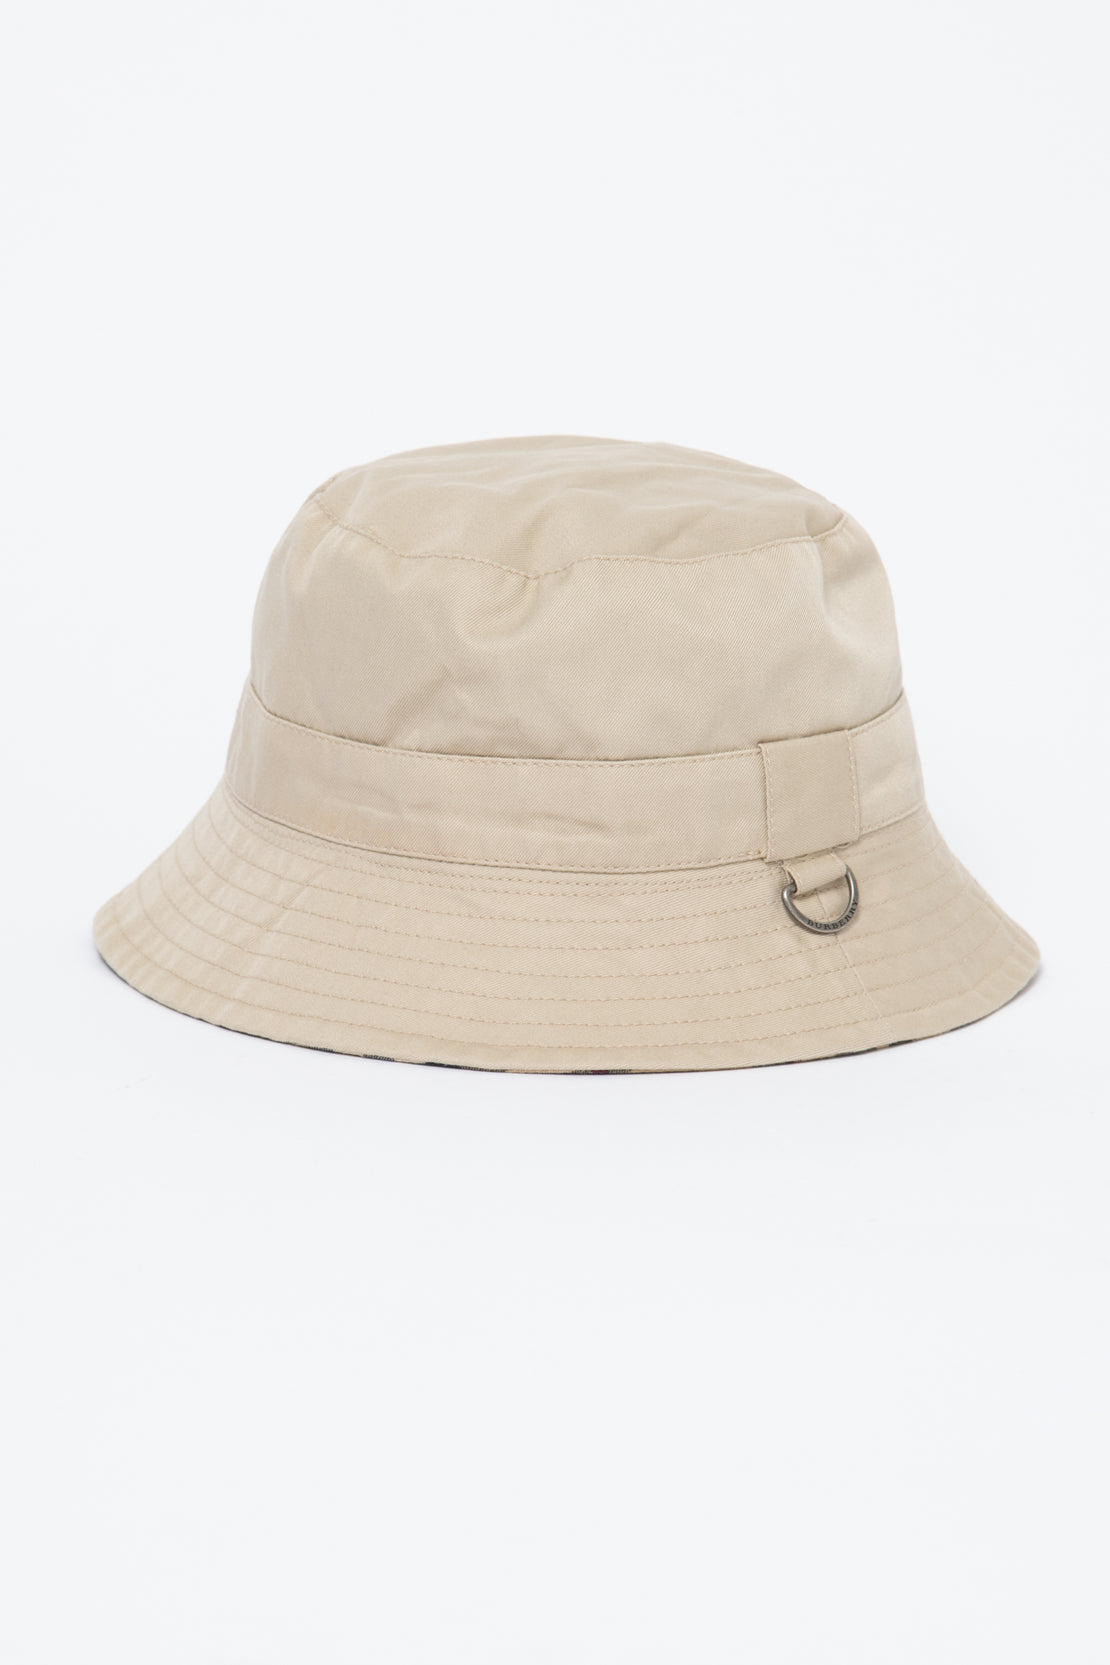 Burberry Reversible Bucket Hat